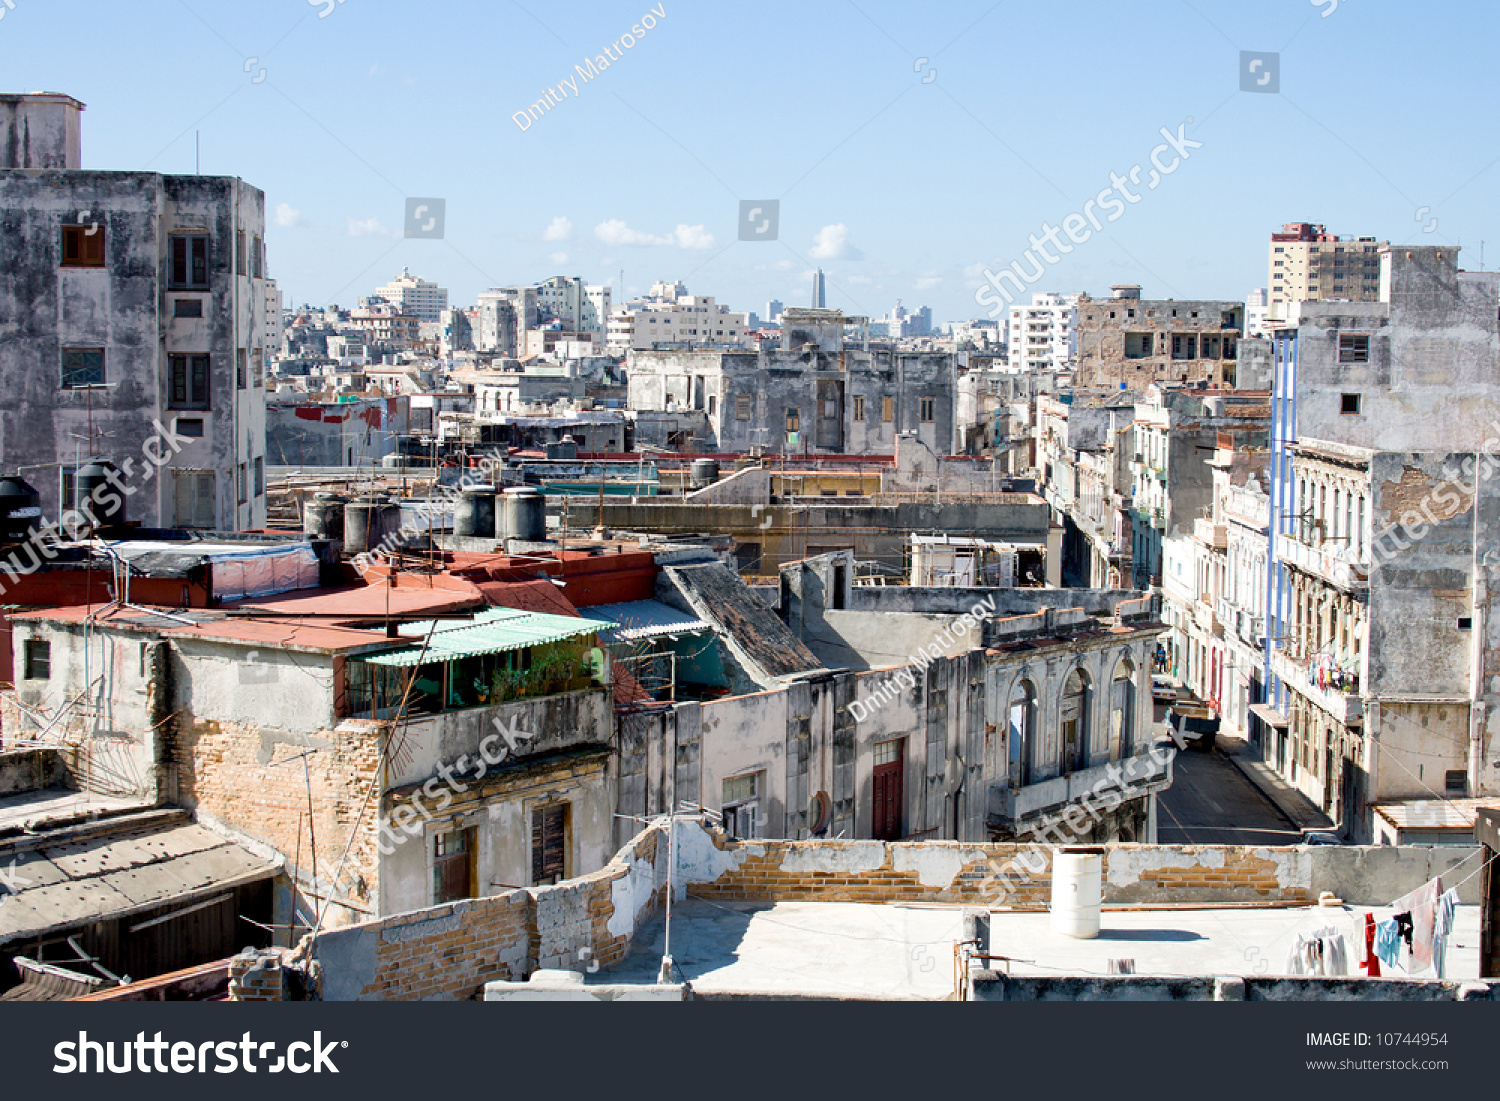 Different Old Buildings Slum Block Southern Stock Photo